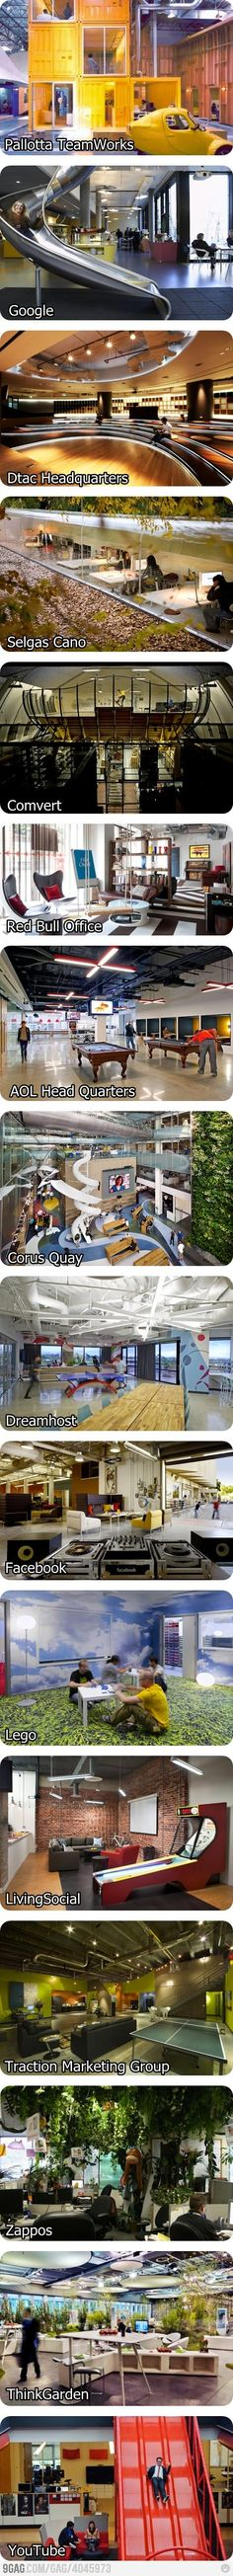 cool offices..... but if I was in the youtube one I would challenge people every day to a slide race no doubt